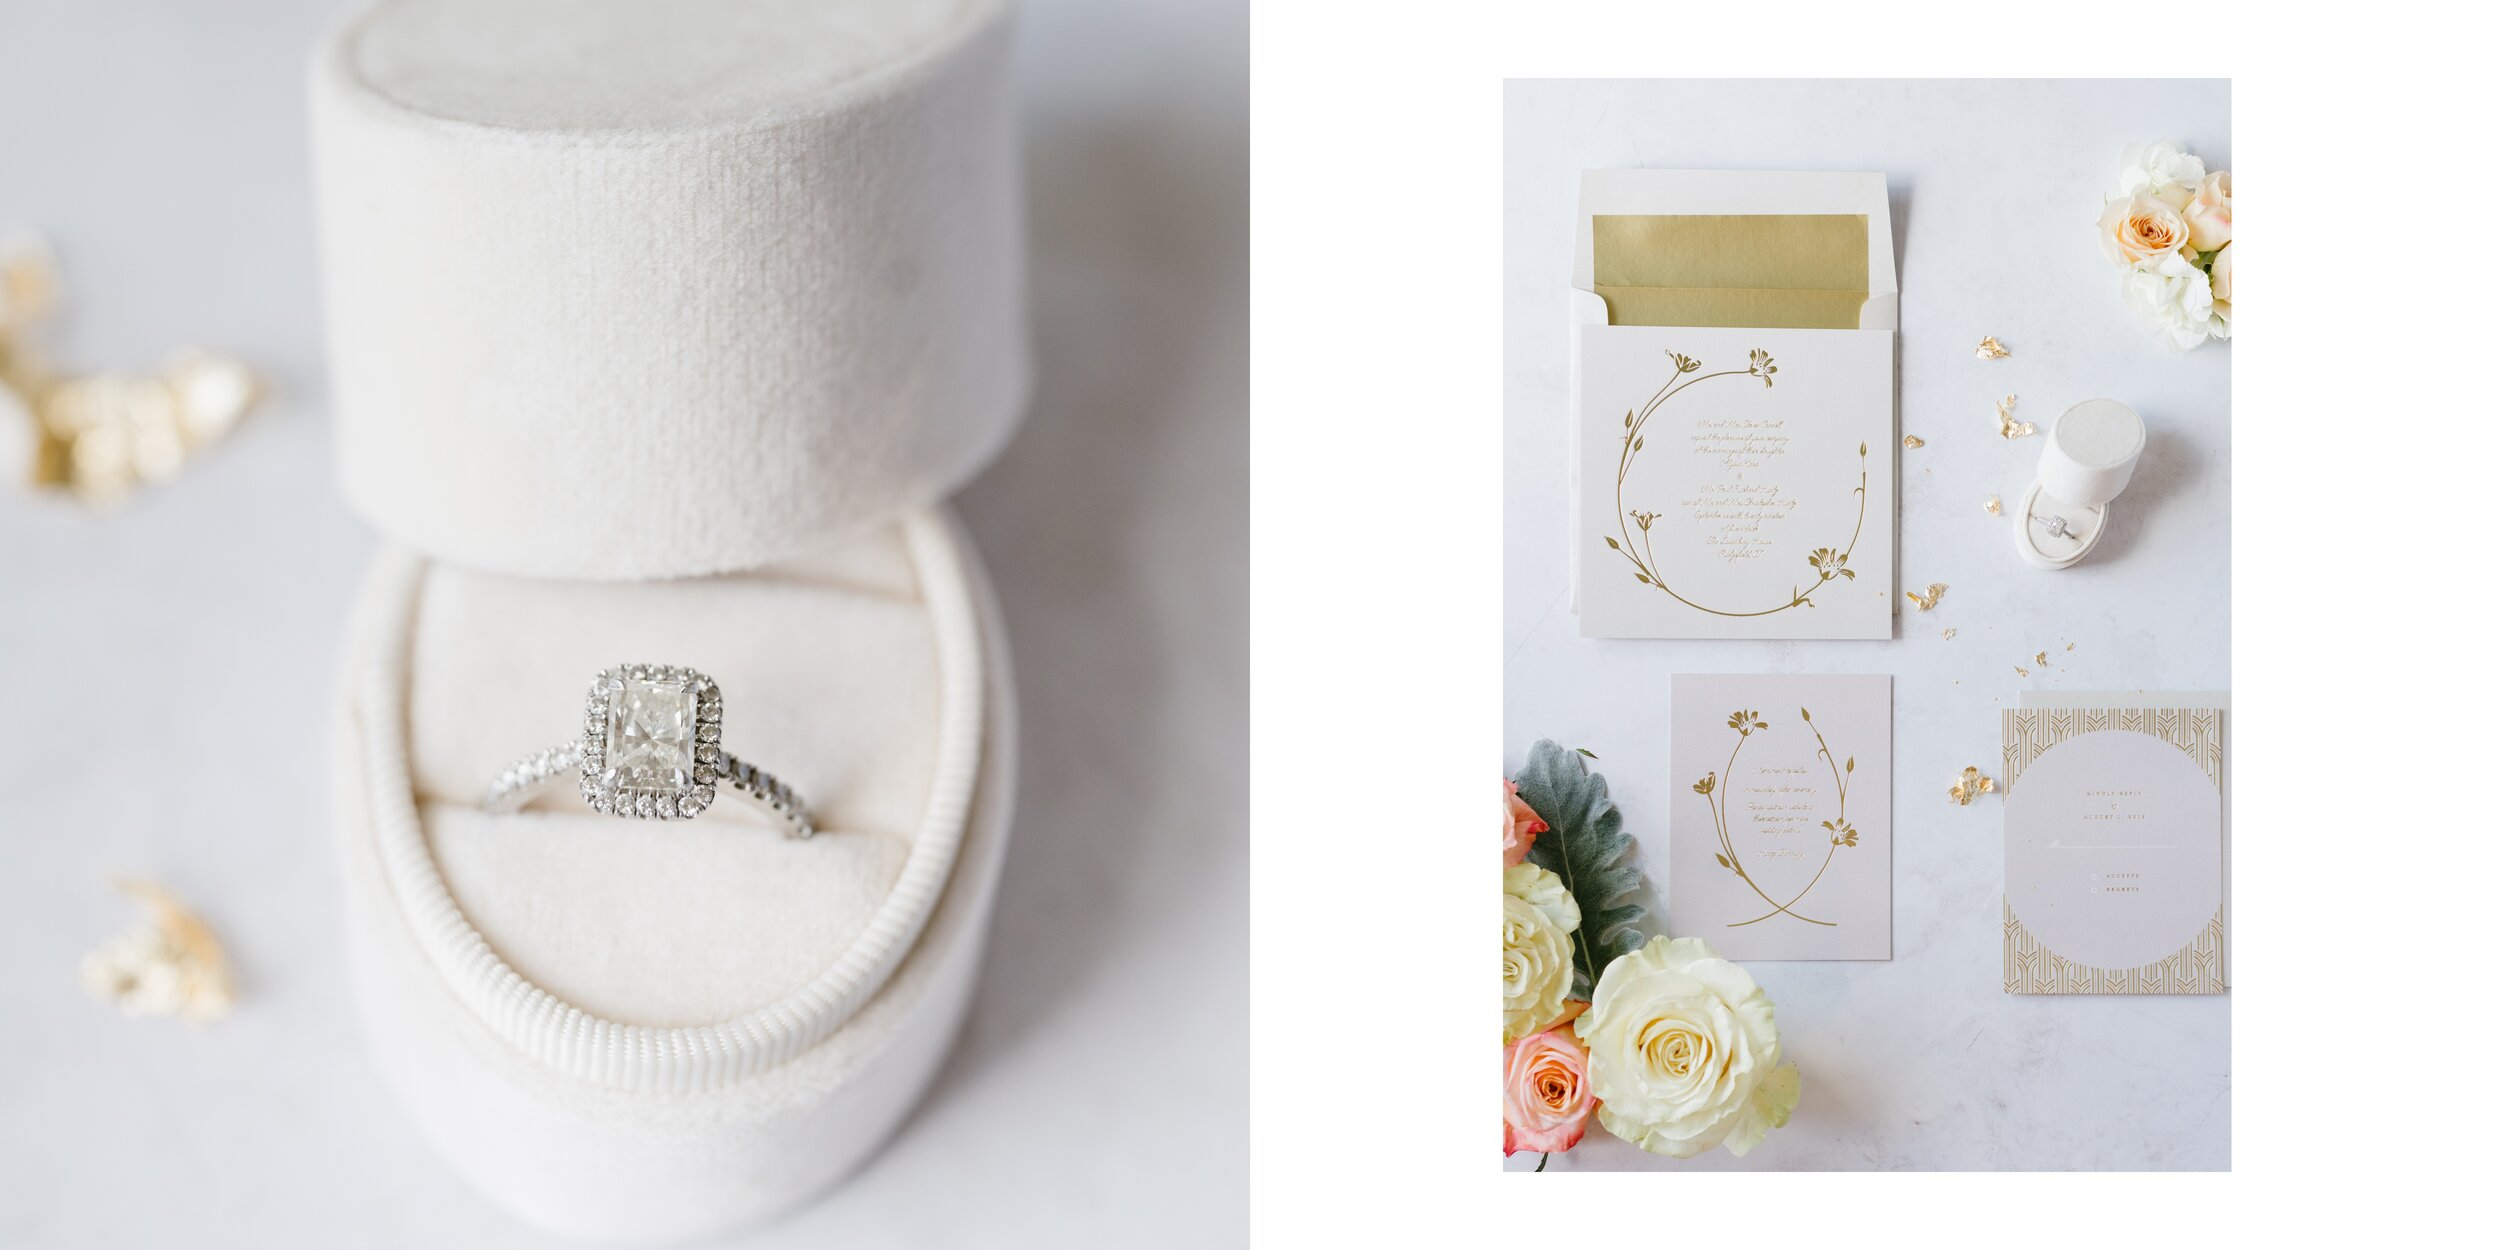 Wedding rings and invitations